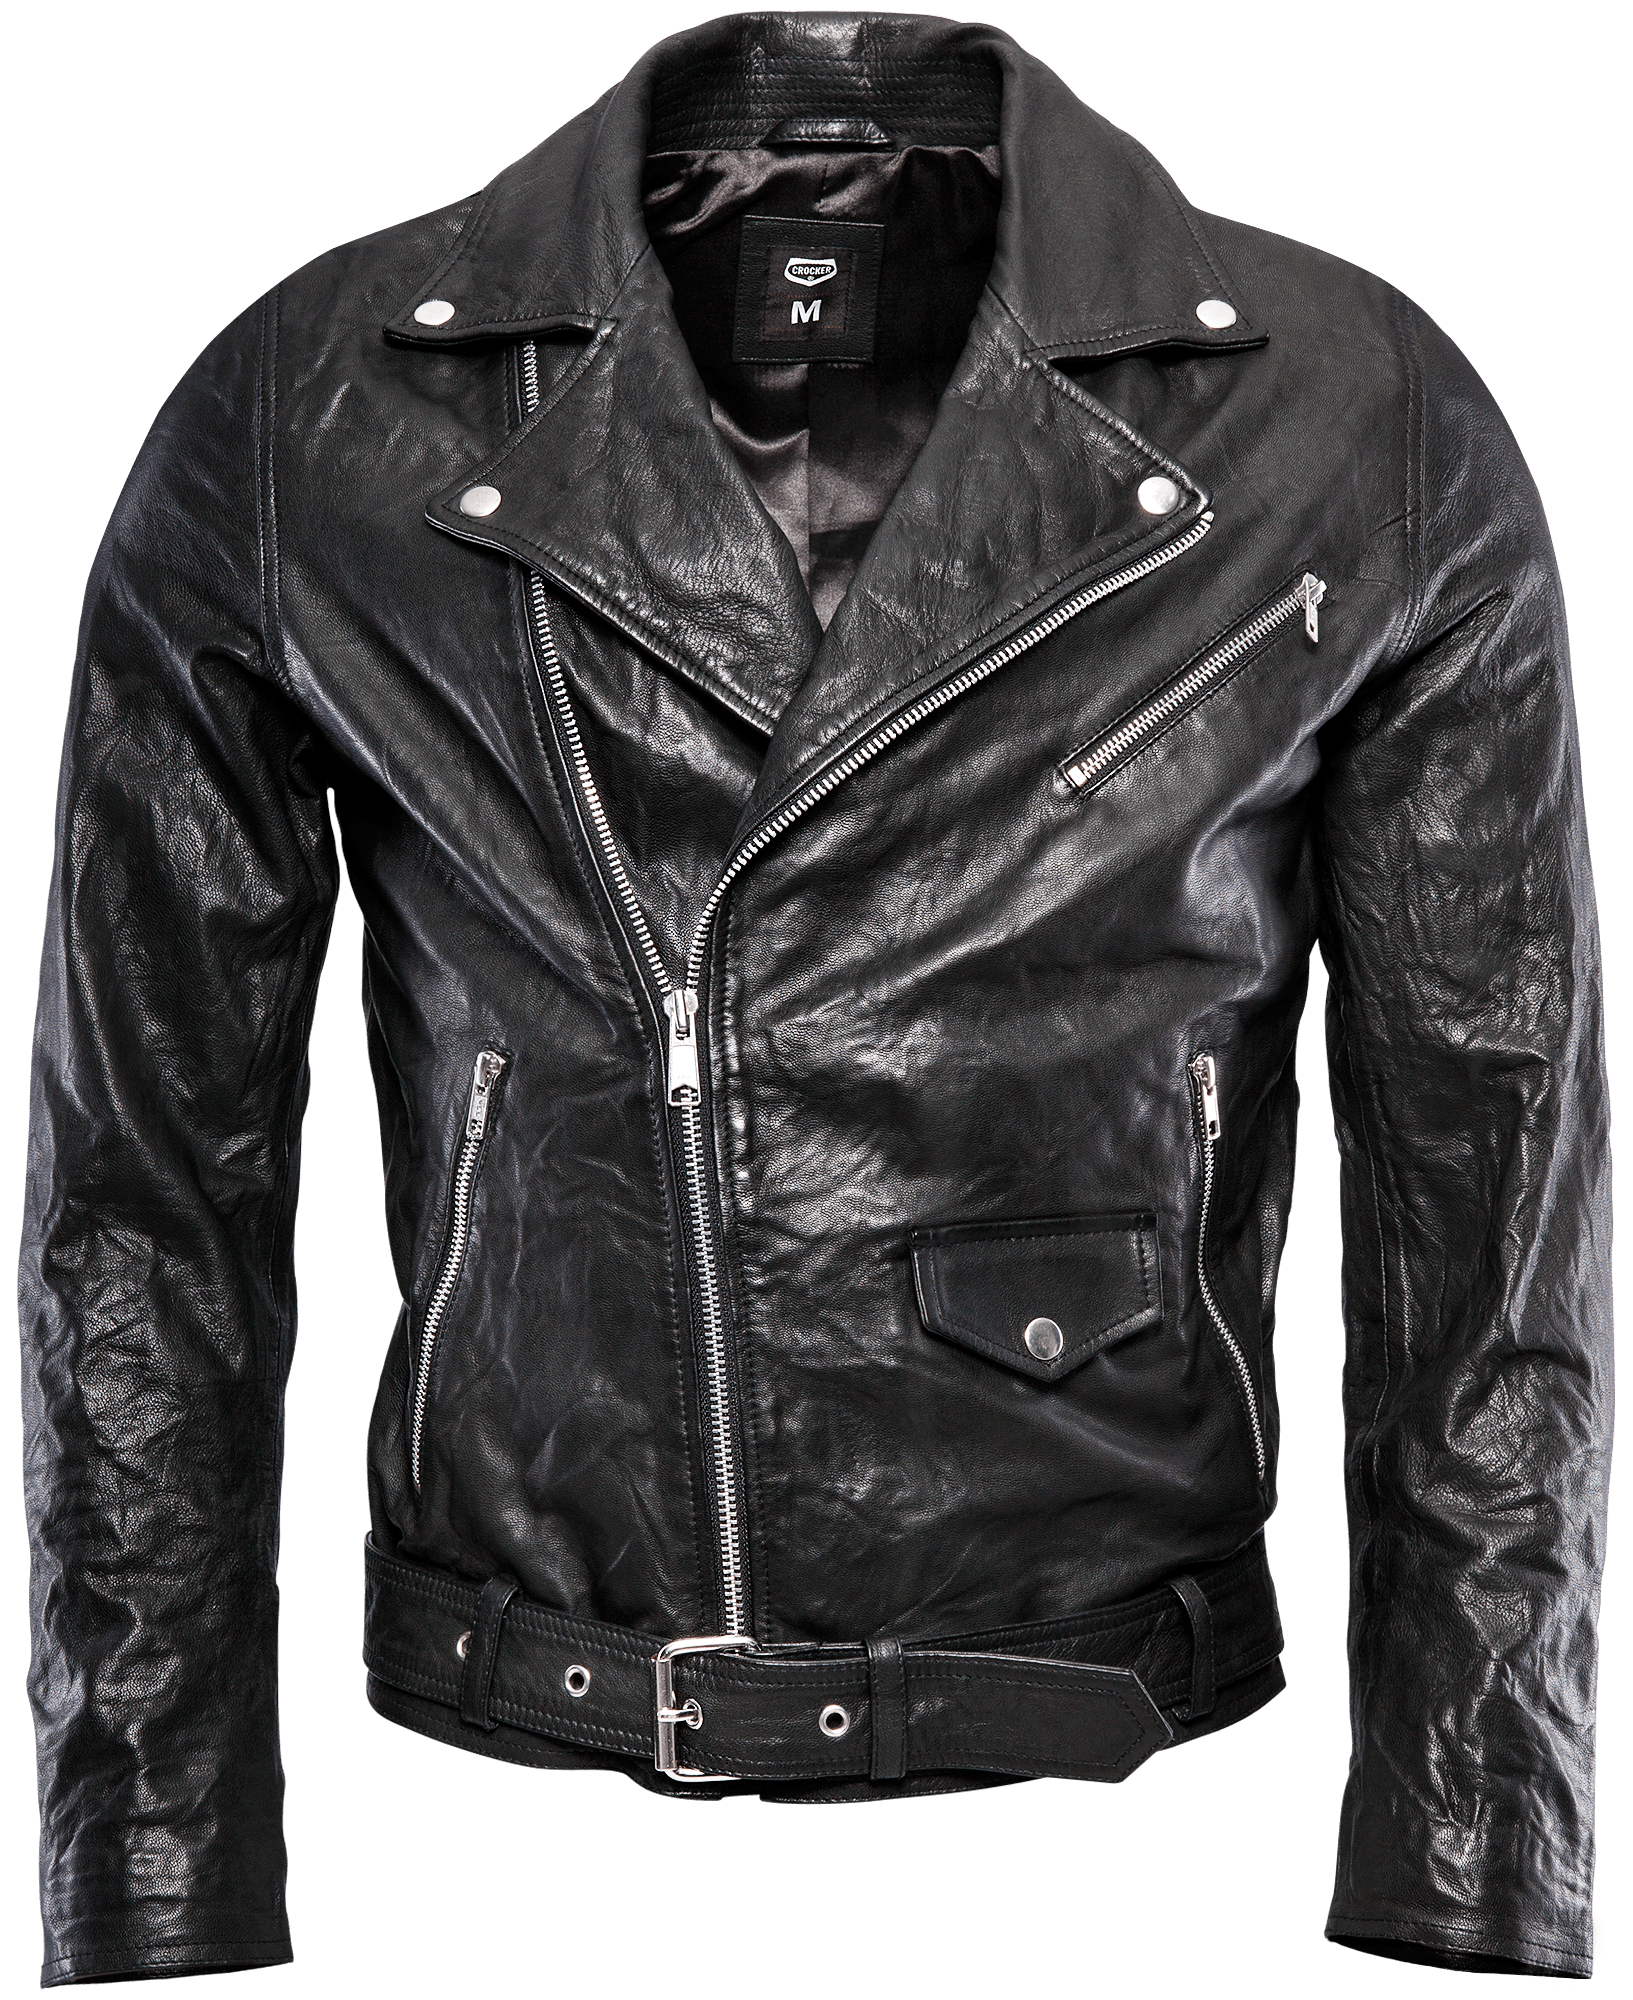 Worn in leather jacket